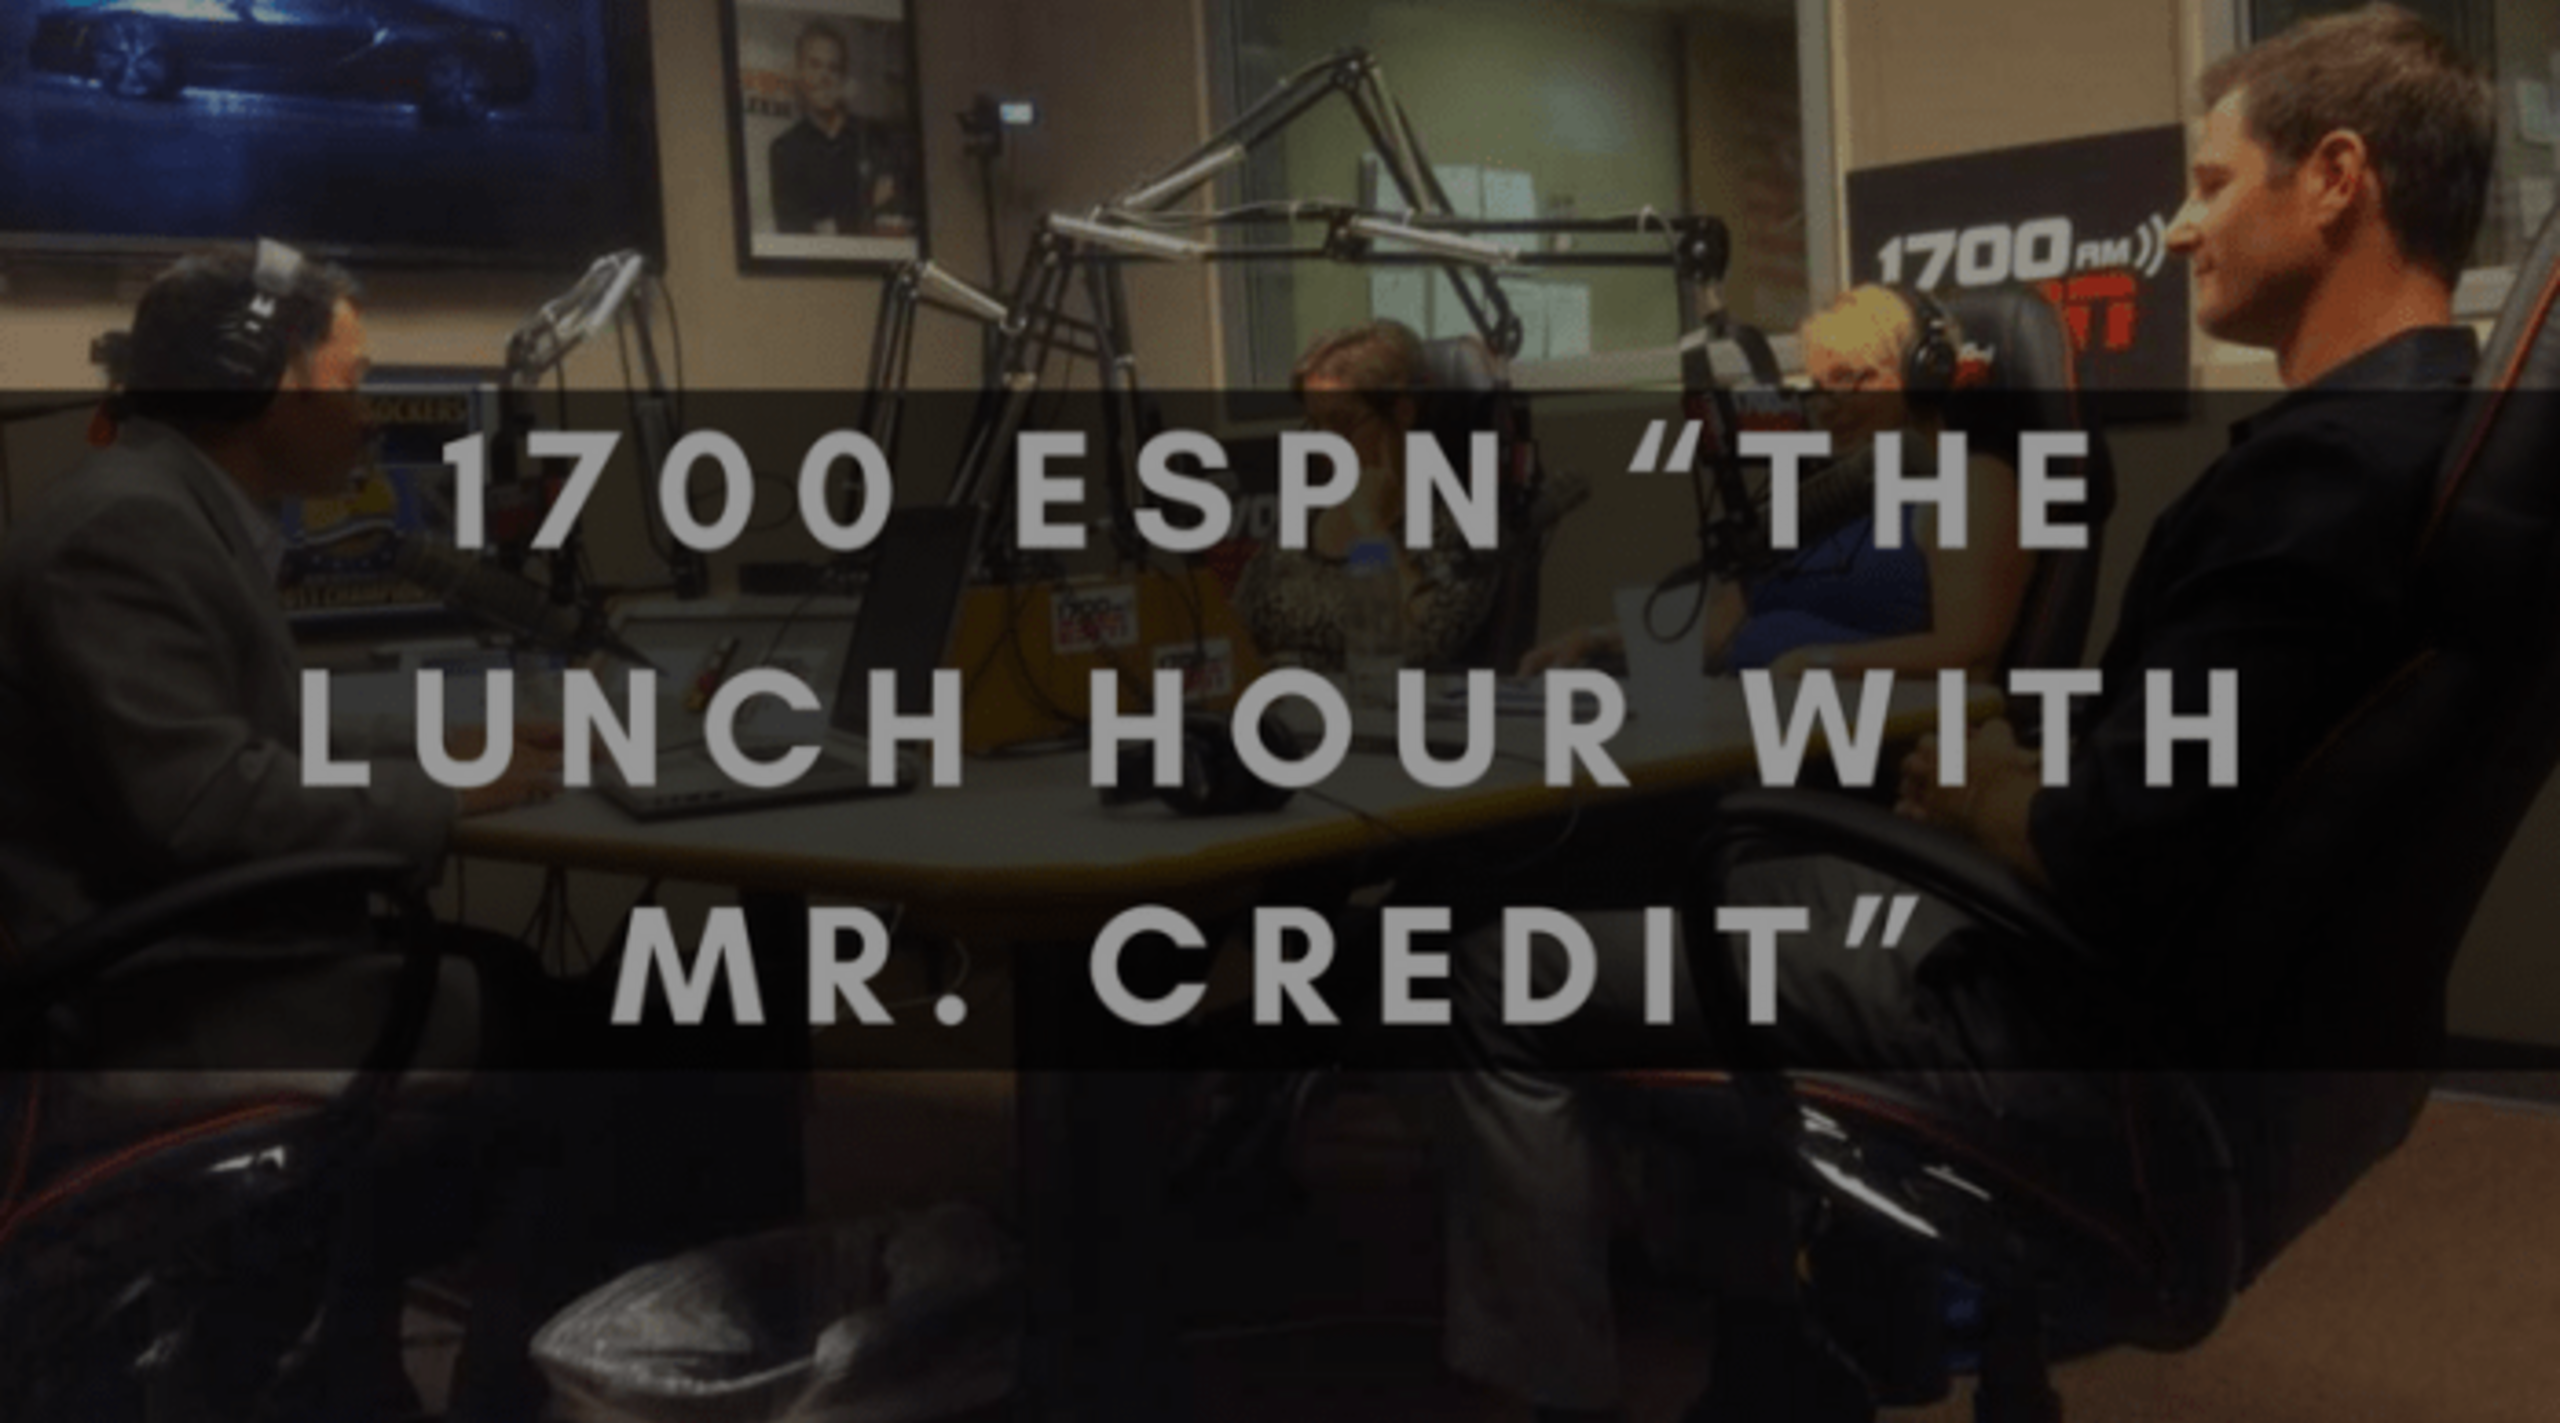 """1700 ESPN """"THE LUNCH HOUR WITH MR. CREDIT"""